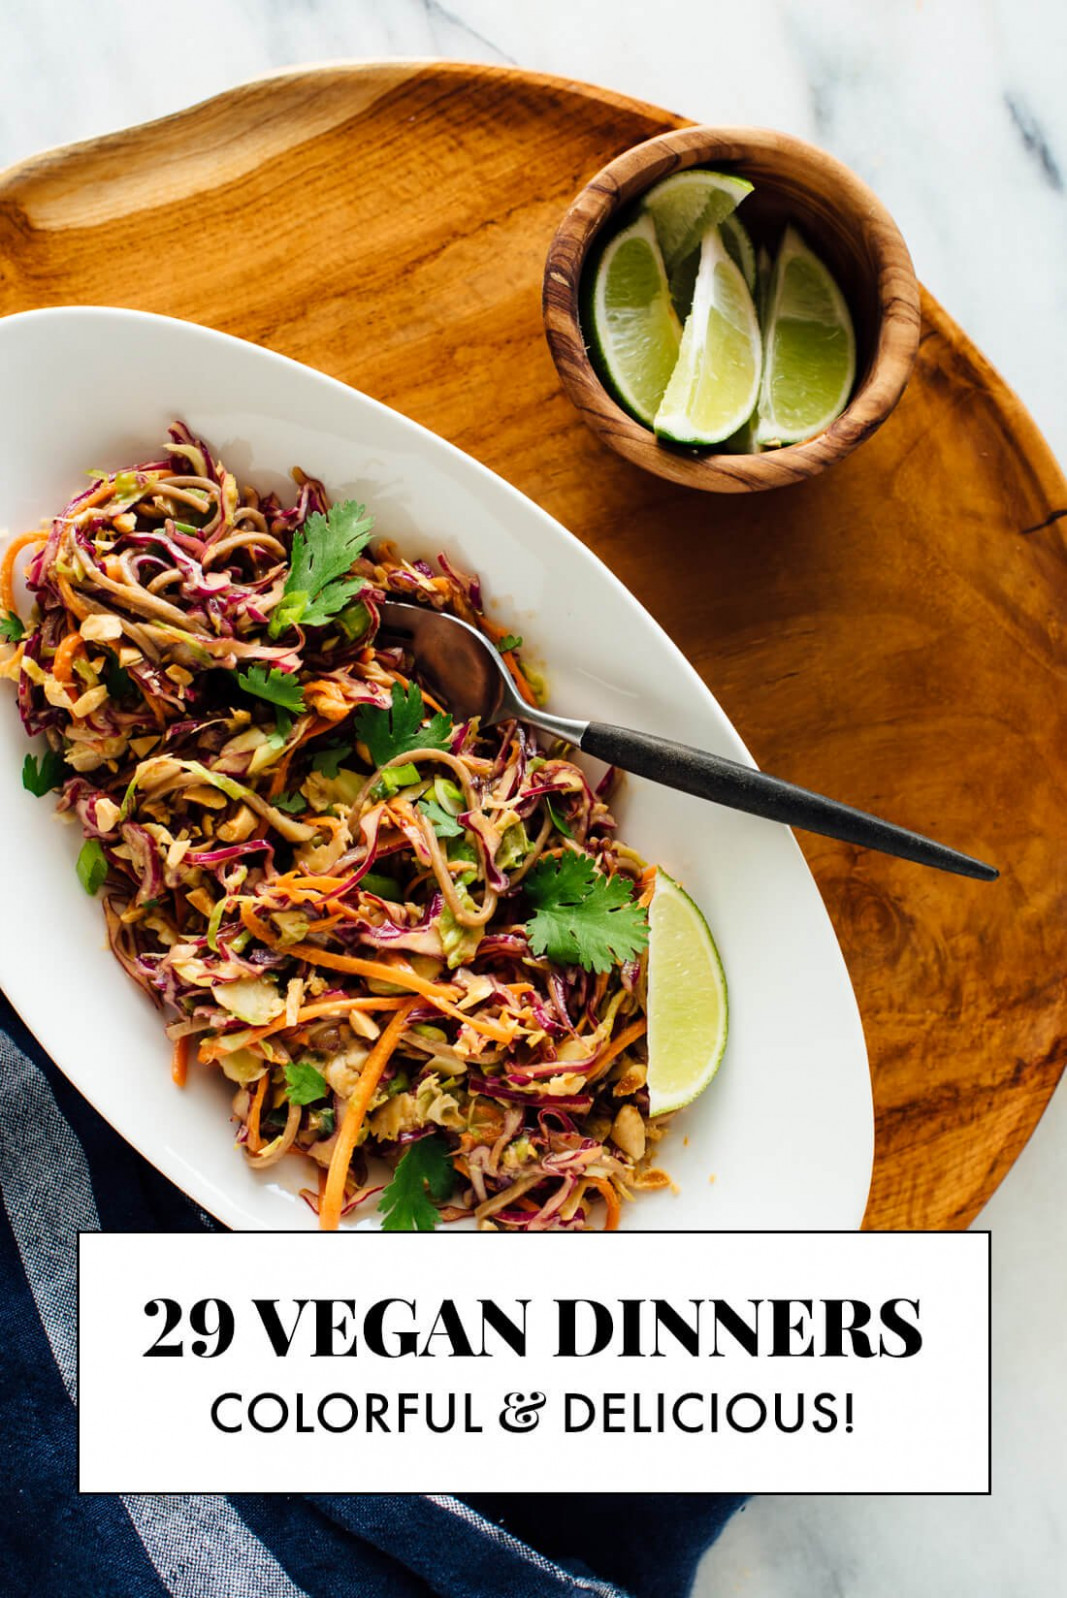 13 Delicious Vegan Dinner Recipes - Cookie and Kate - recipes for dinner